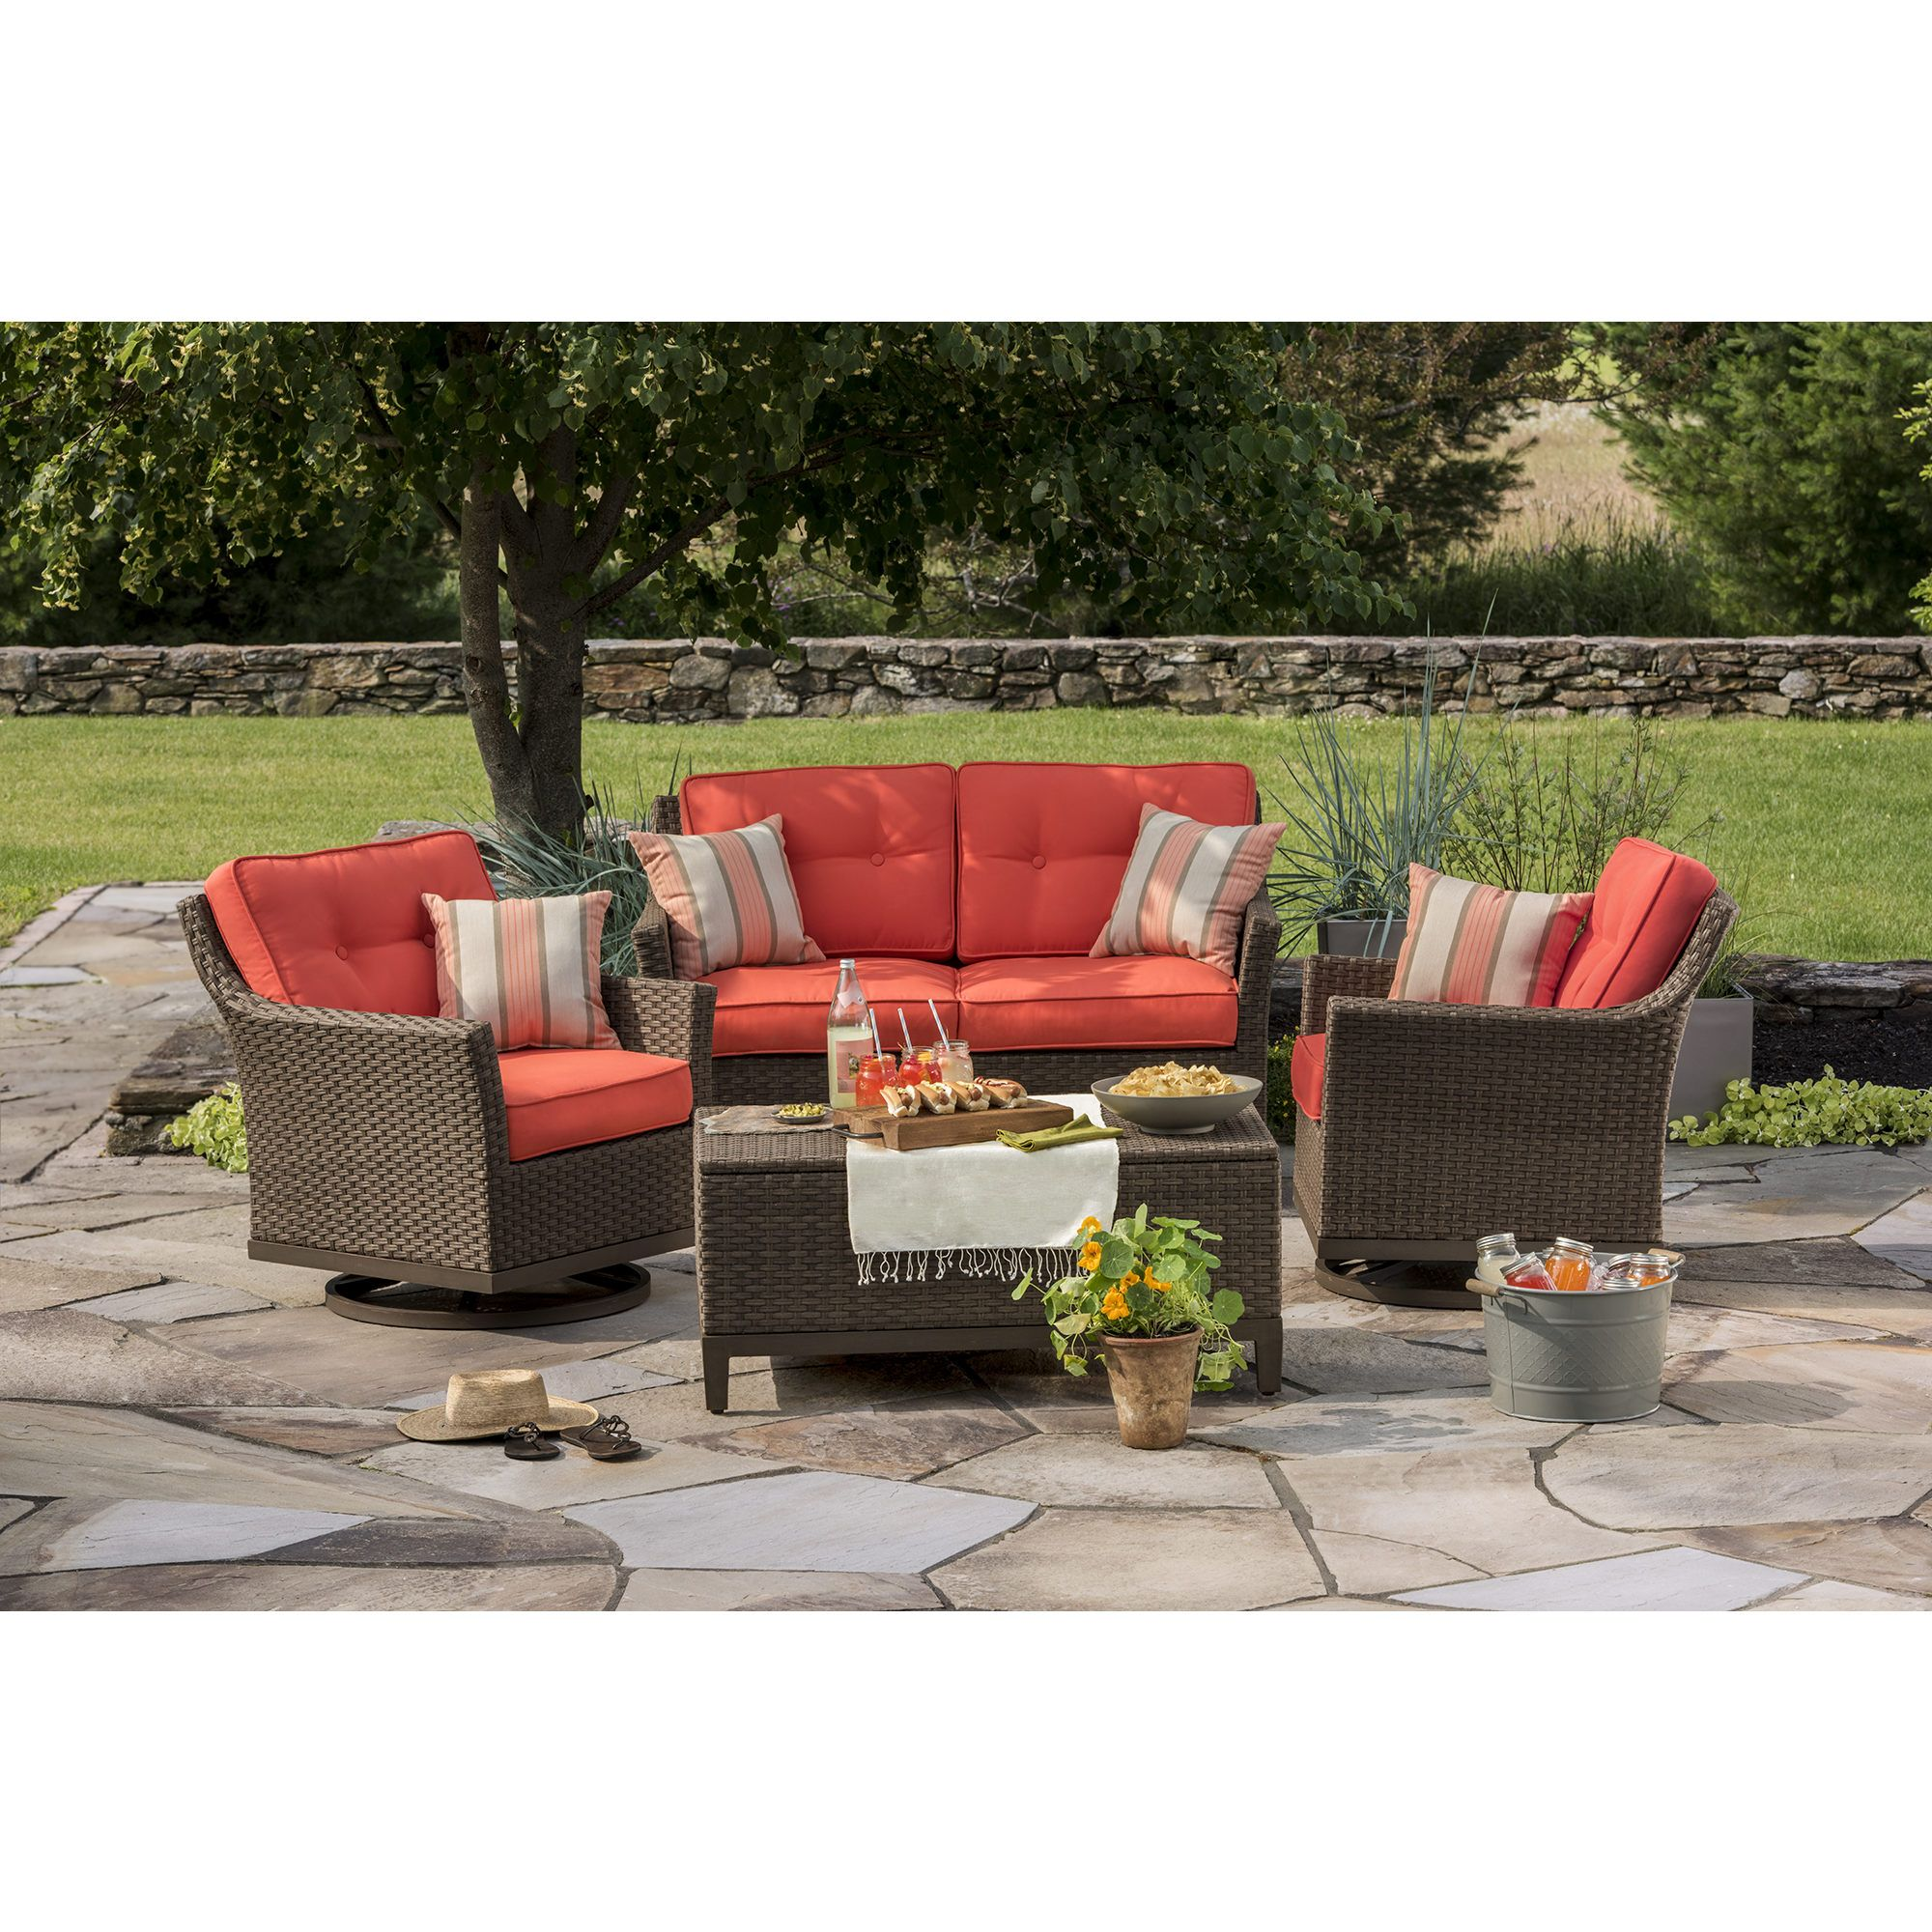 Berkley Jensen Antigua 4 Piece Wicker Patio Set